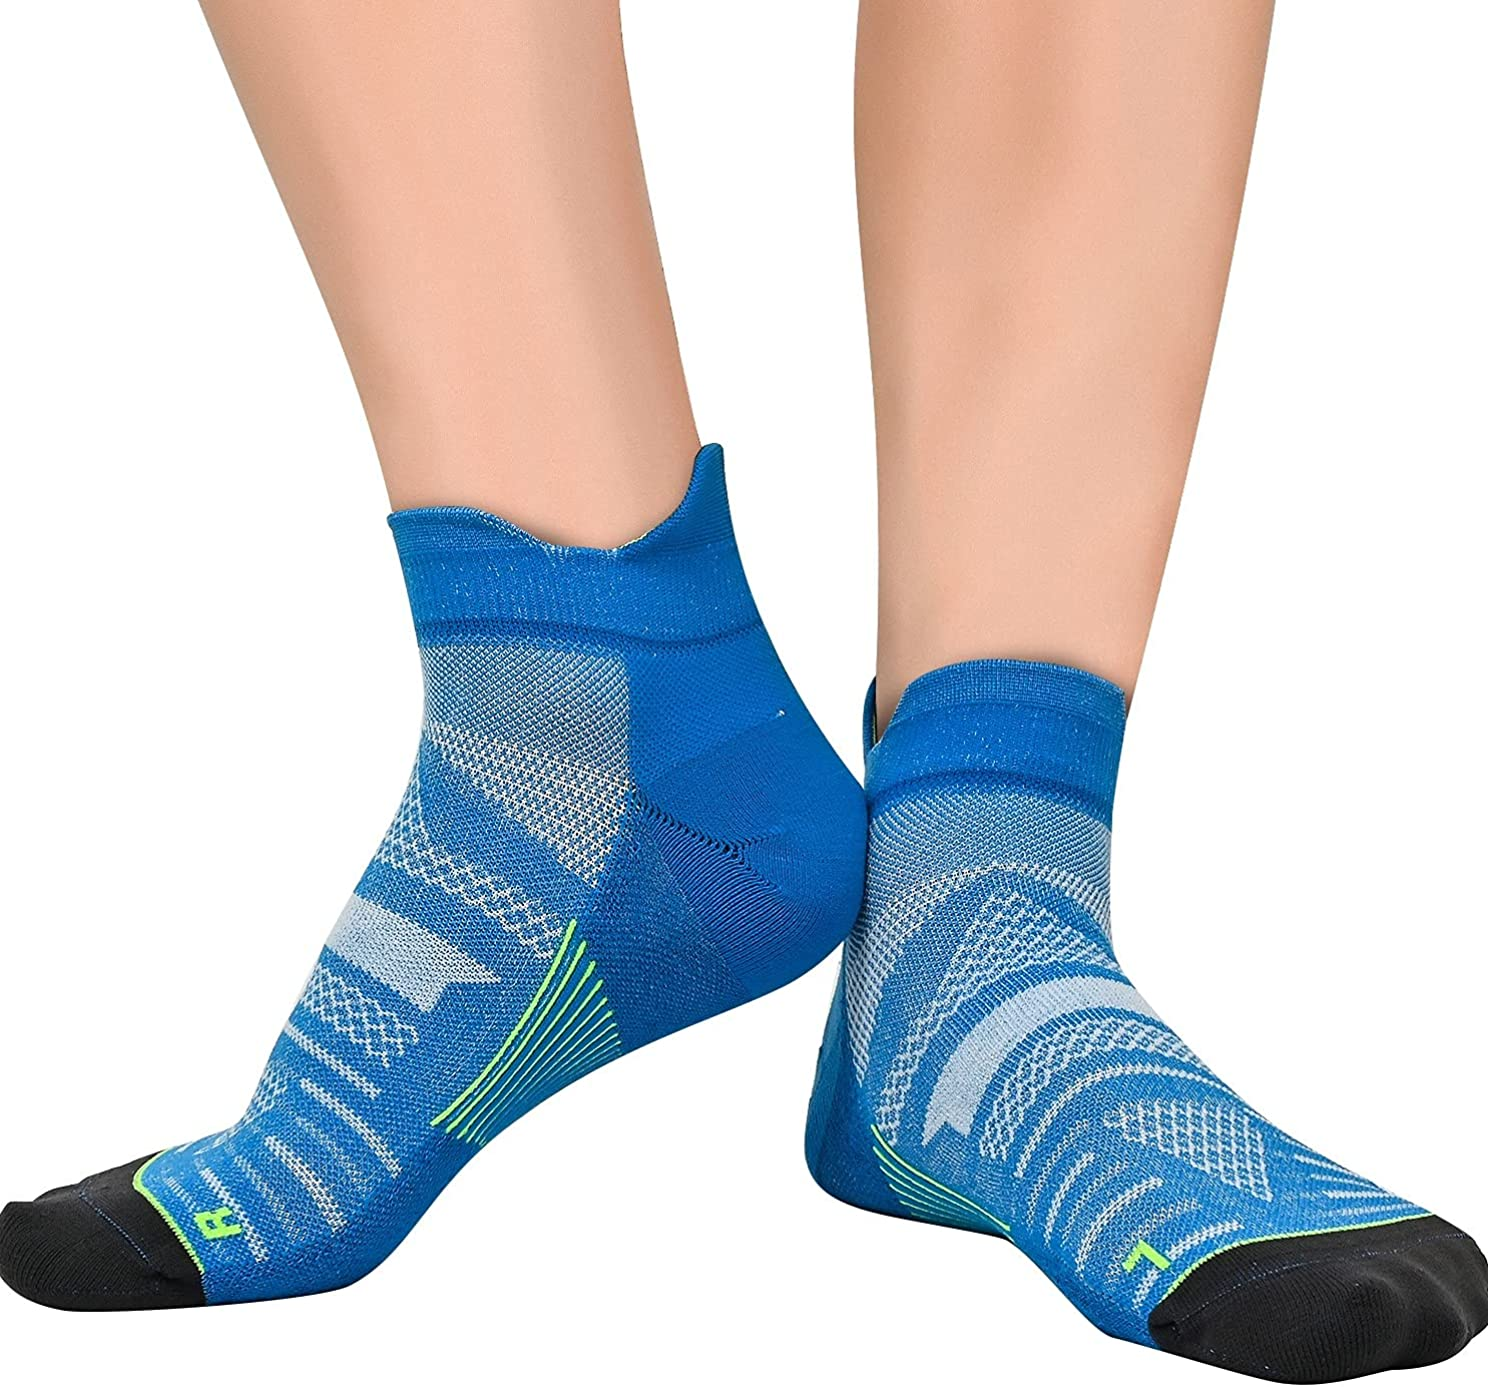 Compression Coolmax Athletic Ankle Running Socks Wicking Anti-Odor Seamless Plantar Fasciitis With Arch Support 1/3 Pack : Sports & Outdoors